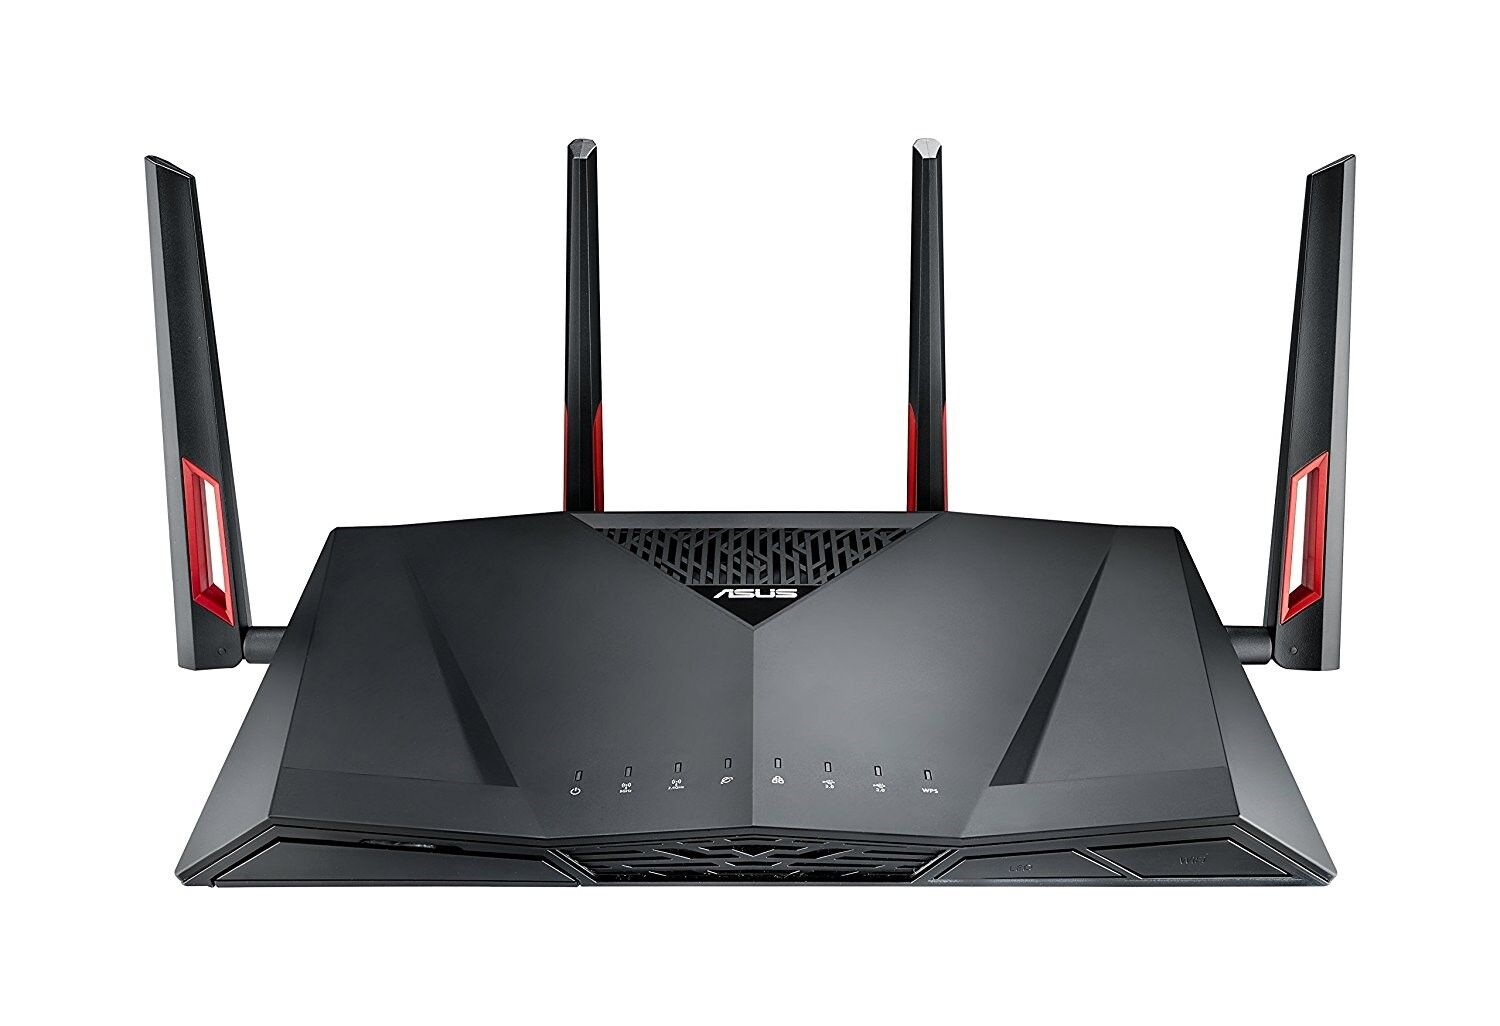 -NEW- ASUS RT-AC88U Wireless-AC3100 Dual Band Gigabit Router